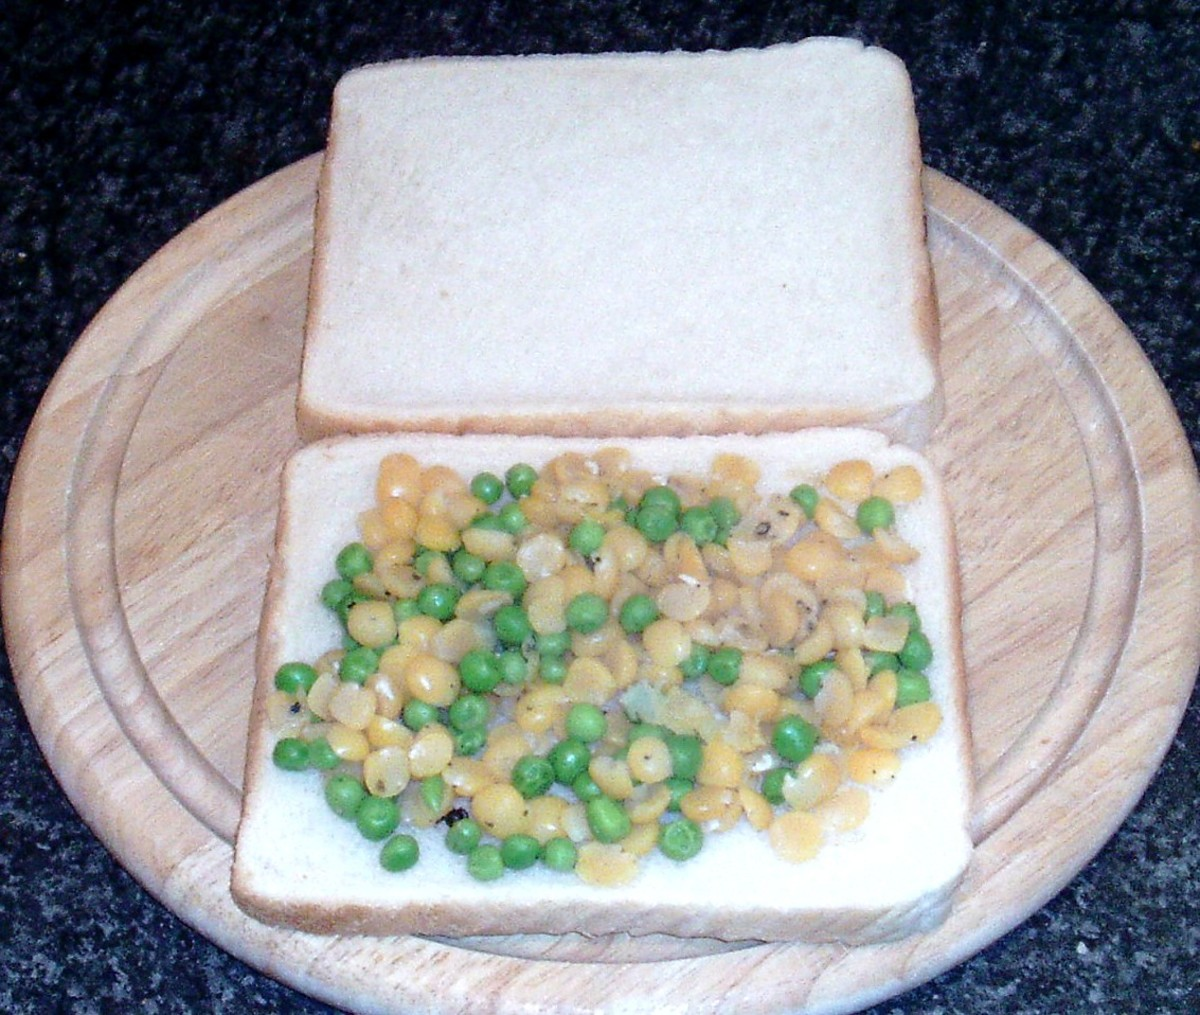 Peas are spread on bottom slice of bread